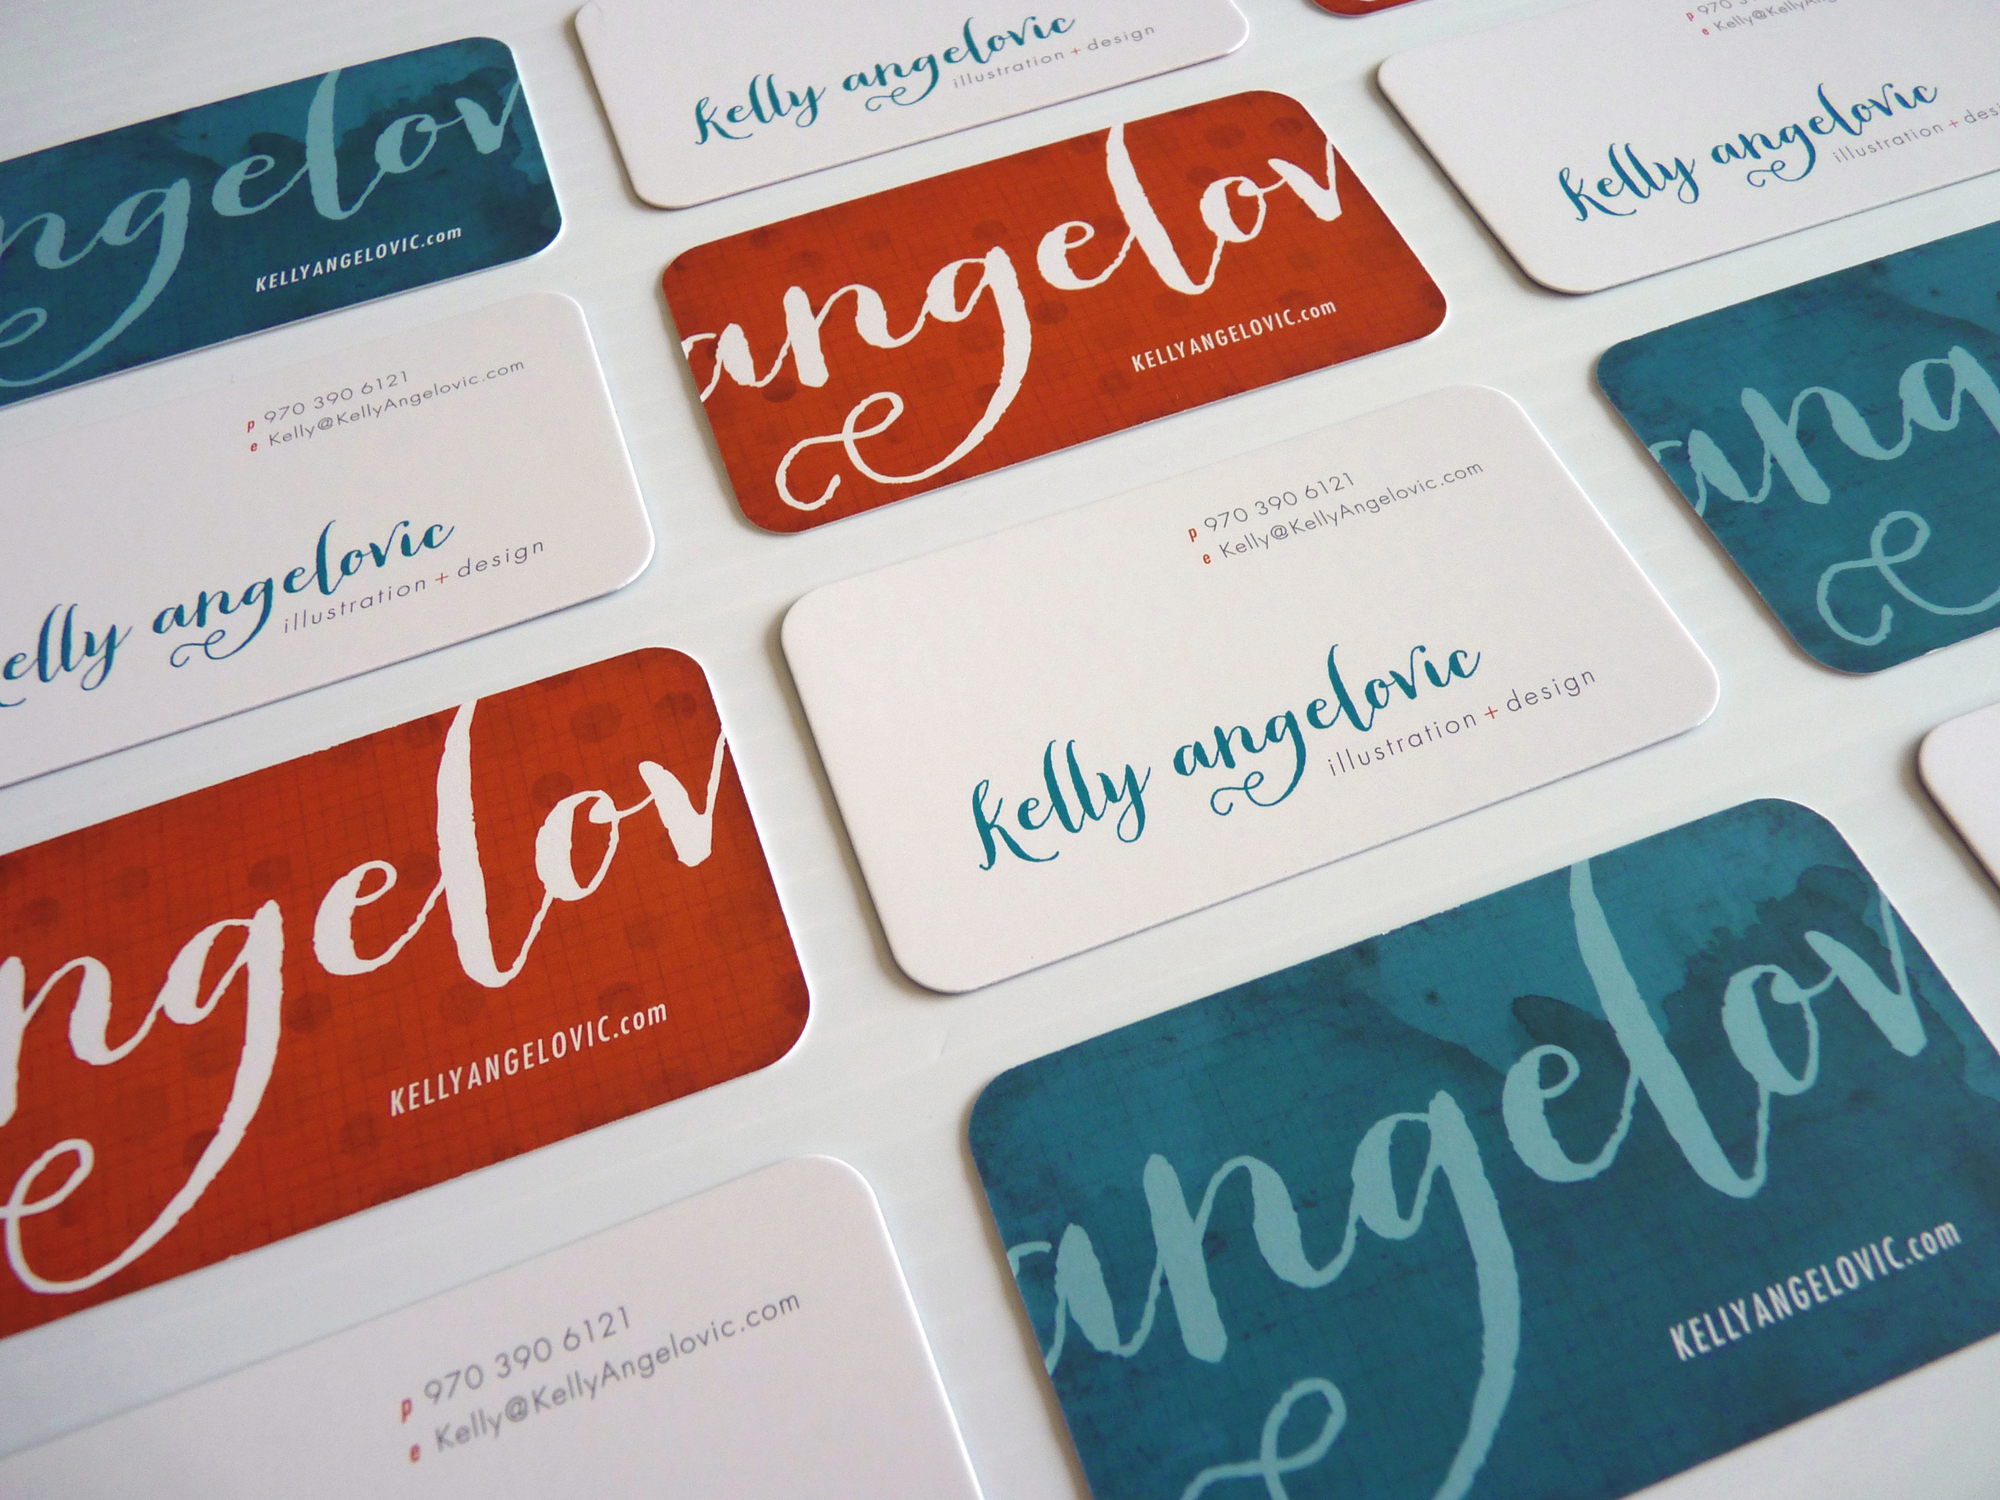 New business cards for Kelly